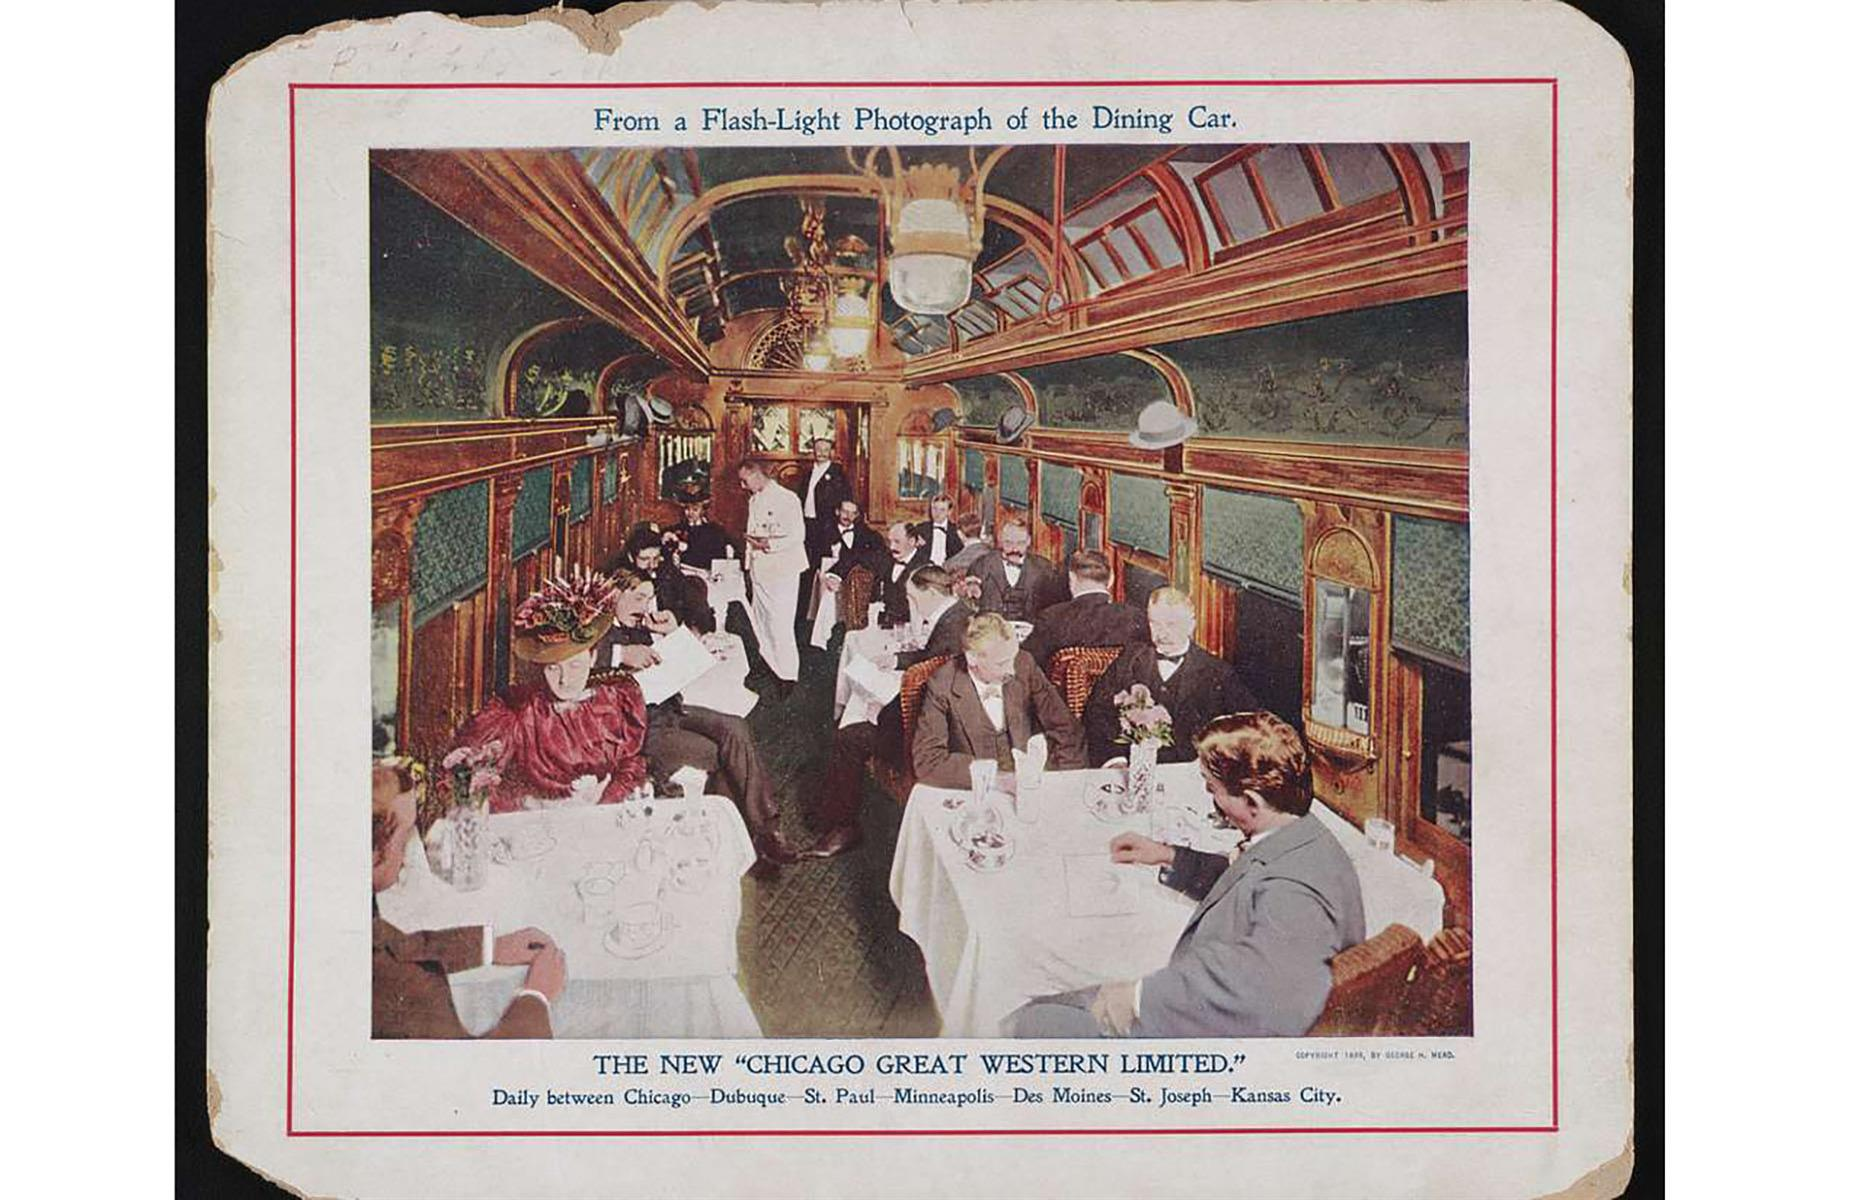 Slide 6 of 32: Chicago Great Western Railway was a relatively small railroad chain, its routes mostly connecting Chicago and the Twin Cities. What it lacked in size though, it made up for in elegance and glamor. The daily Great Western Limited trains connecting Chicago and Kansas City didn't skimp on lavishness either, as seen in this photograph of the dining car, captured in 1899. Dedicated dining cars were already a normal part of long-distance trains by the mid-1880s.